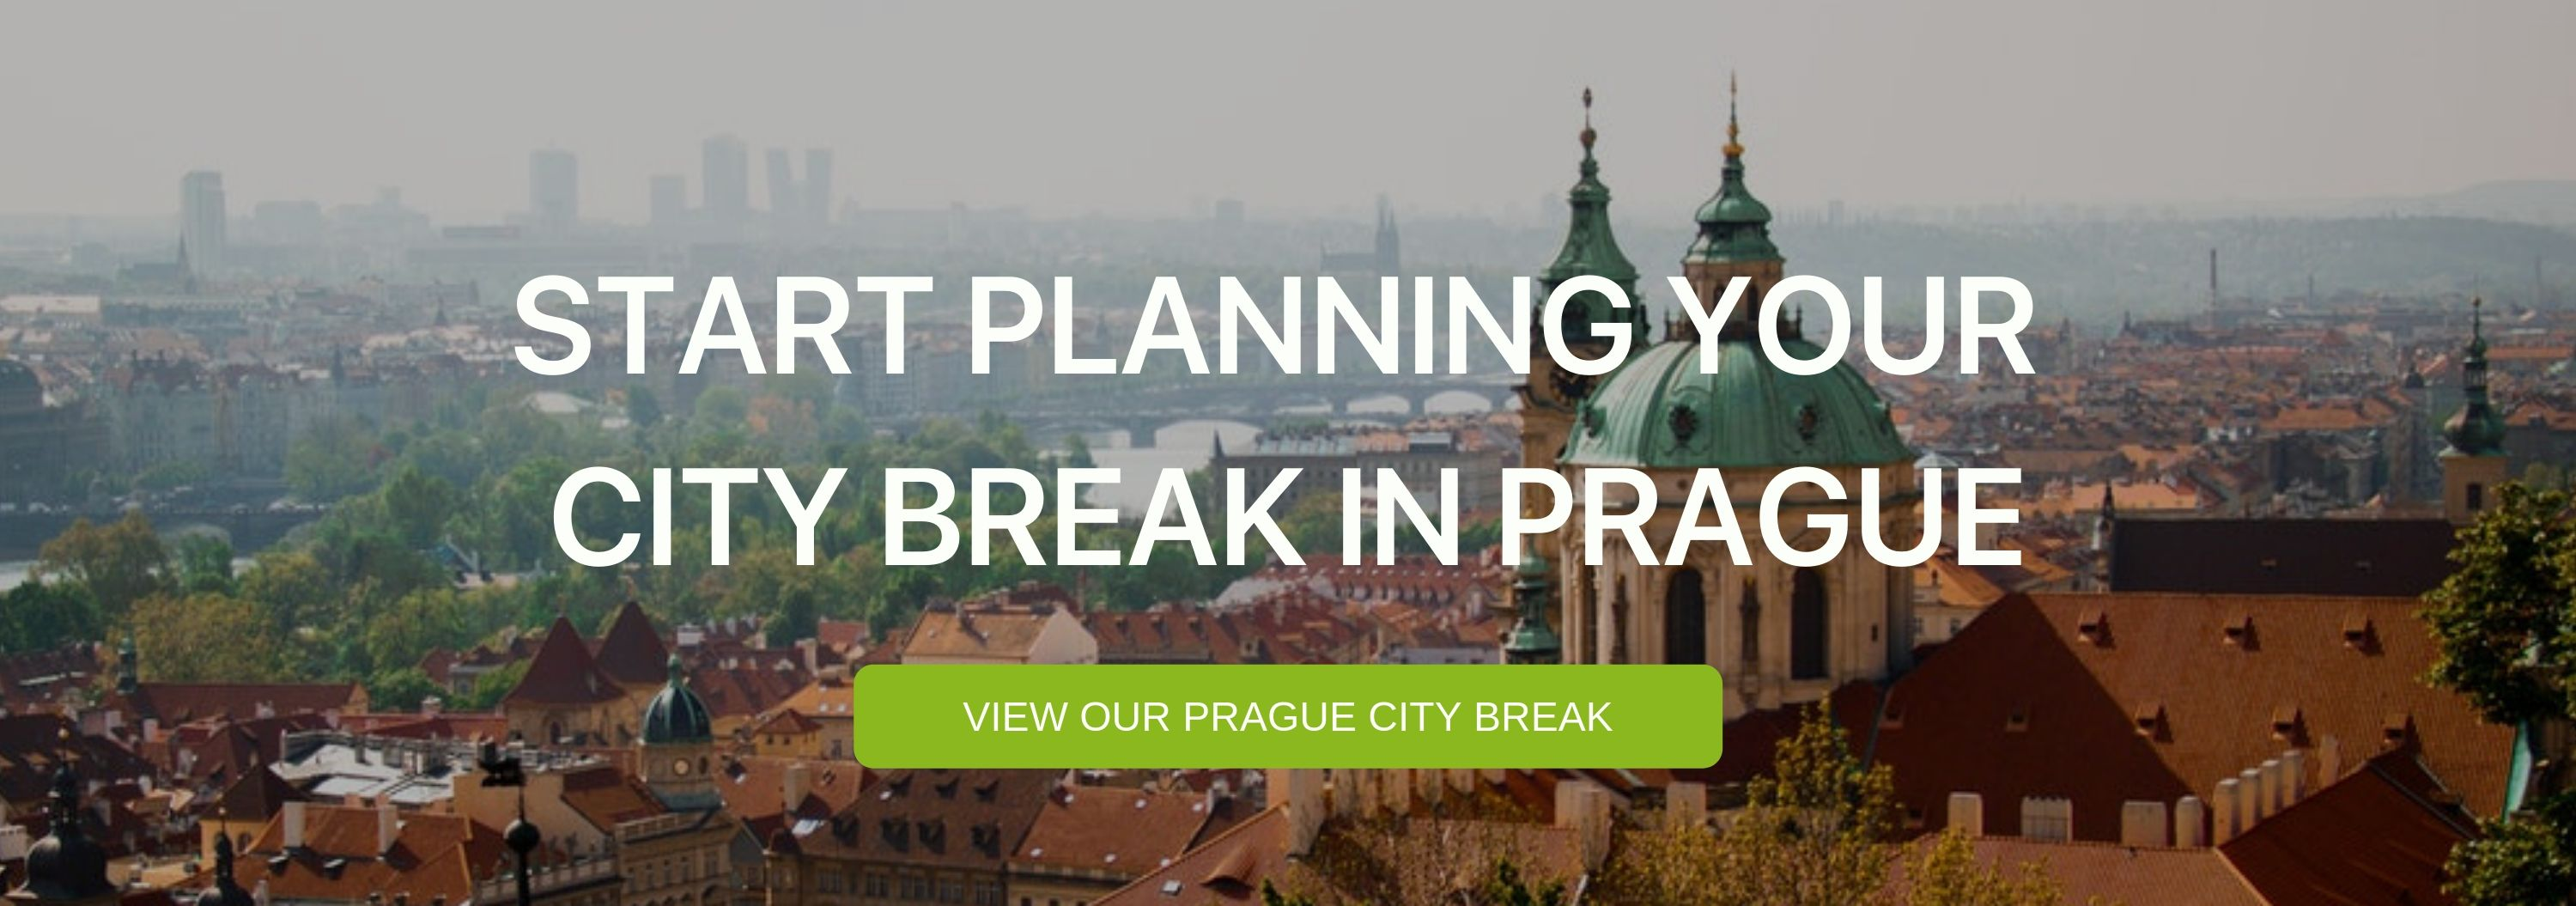 "A banner that says ""Start Planning your city break in Prague"""